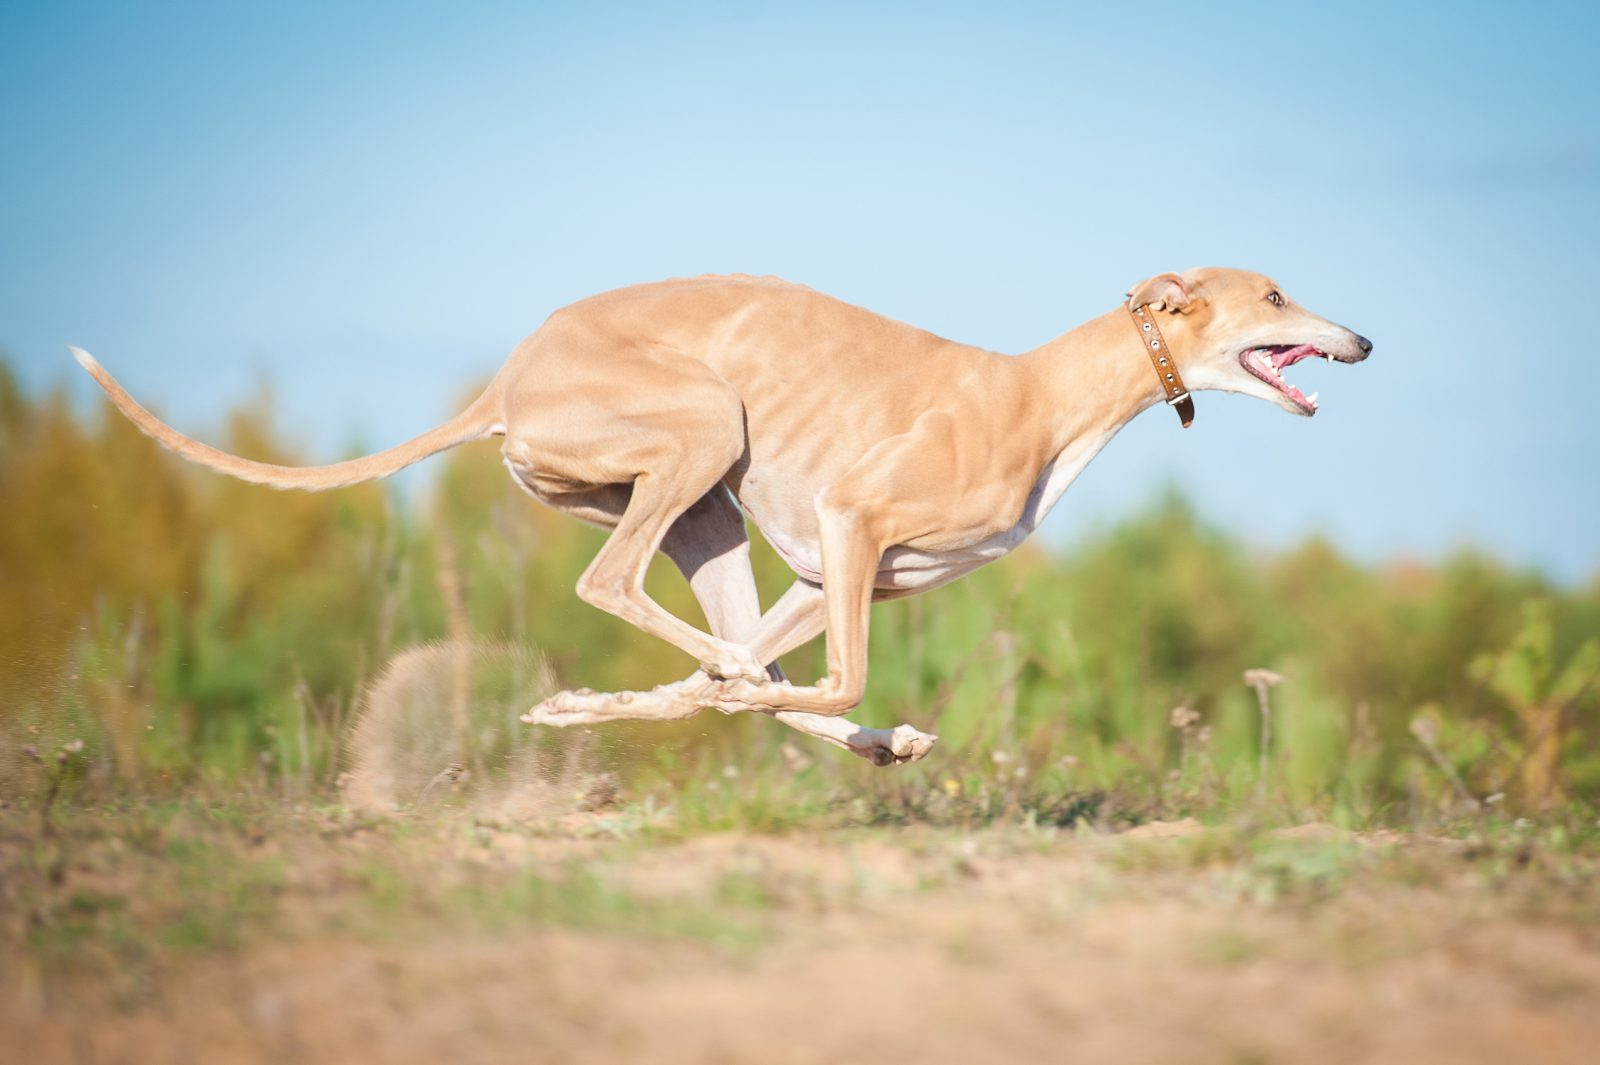 Cachorro galgo greyhound italiano.